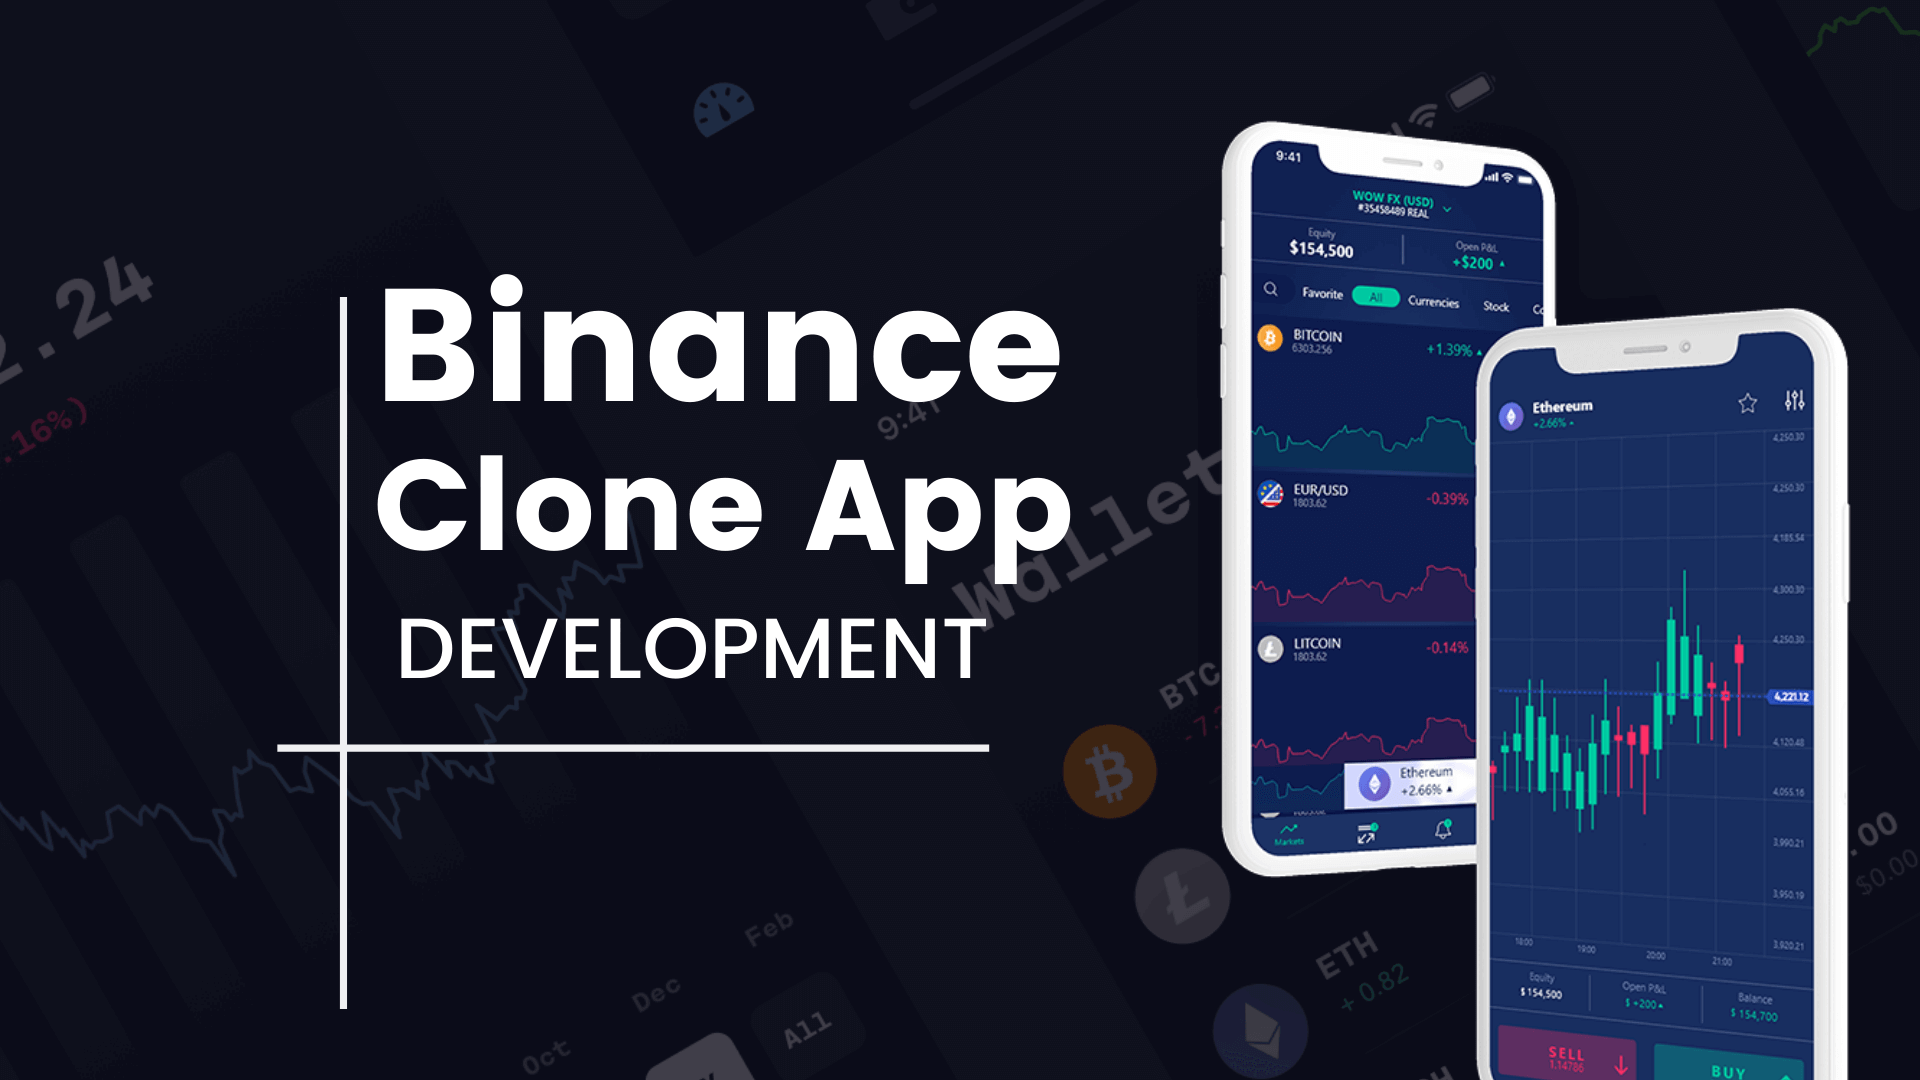 Binance Clone App For Risk-less Trading On The Go!